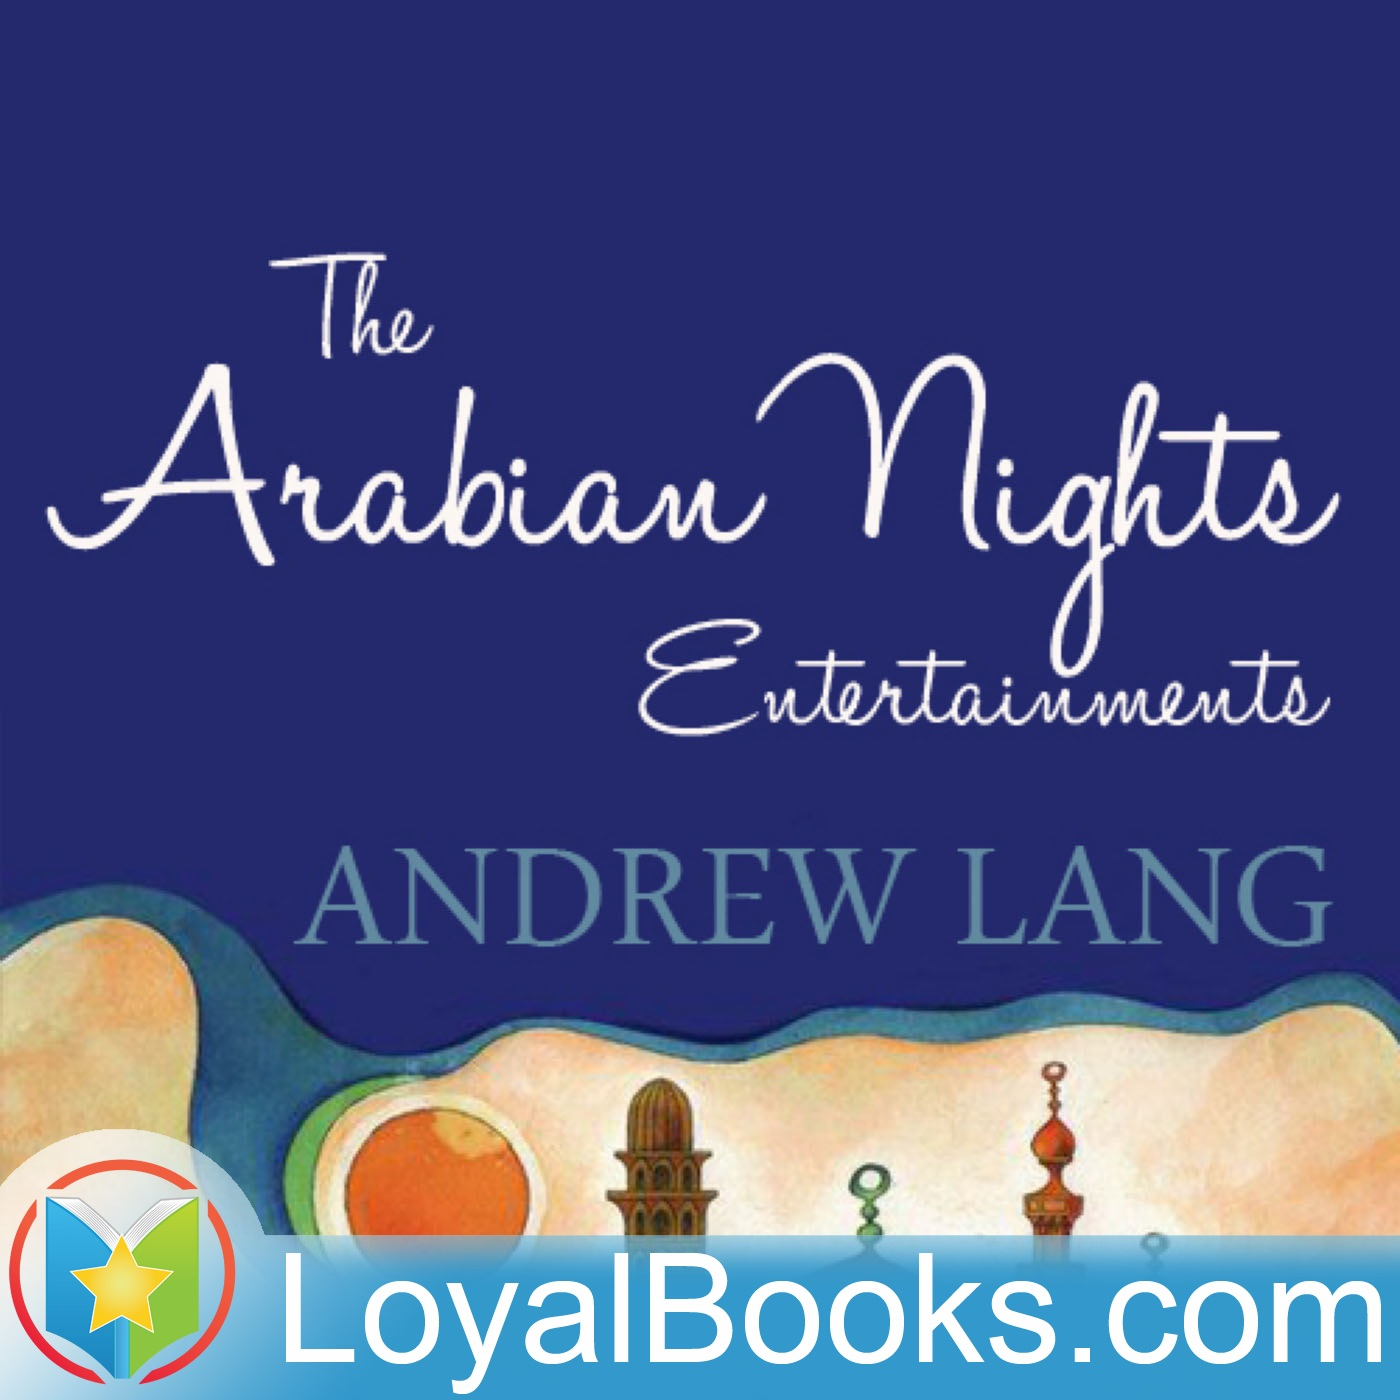 <![CDATA[The Arabian Nights by Andrew Lang]]>